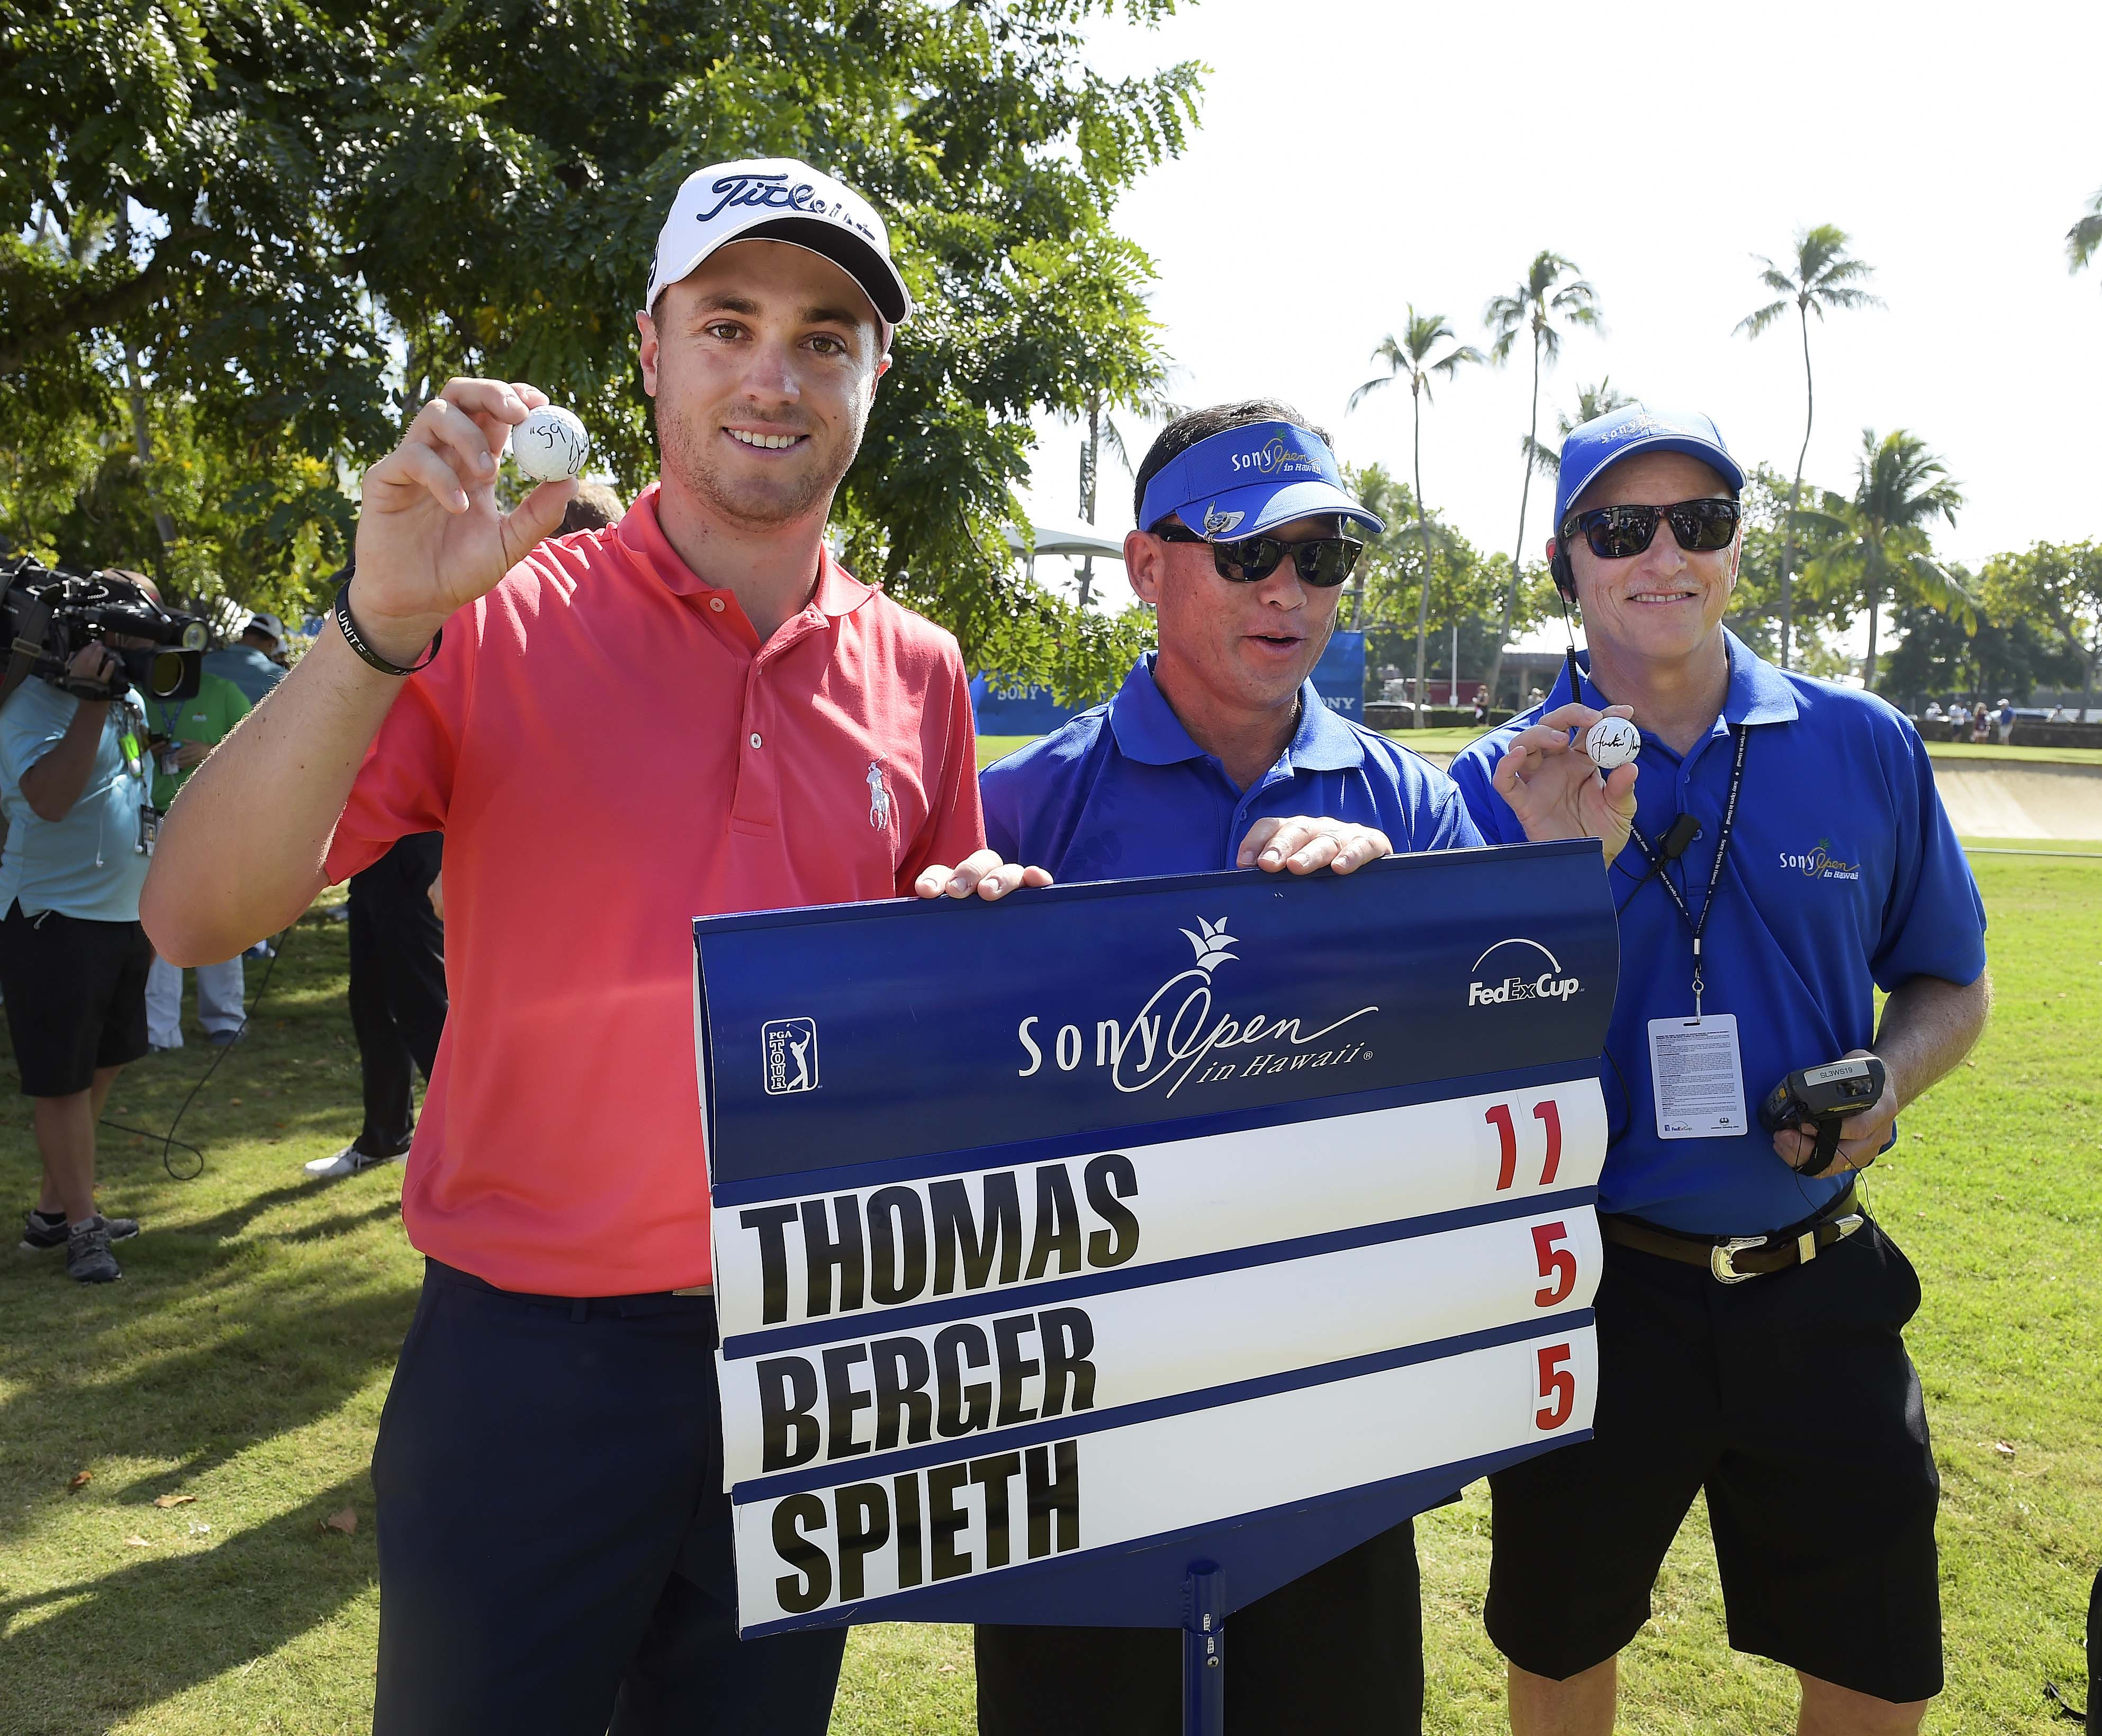 1. 2017: JT shoots 59, crushes field